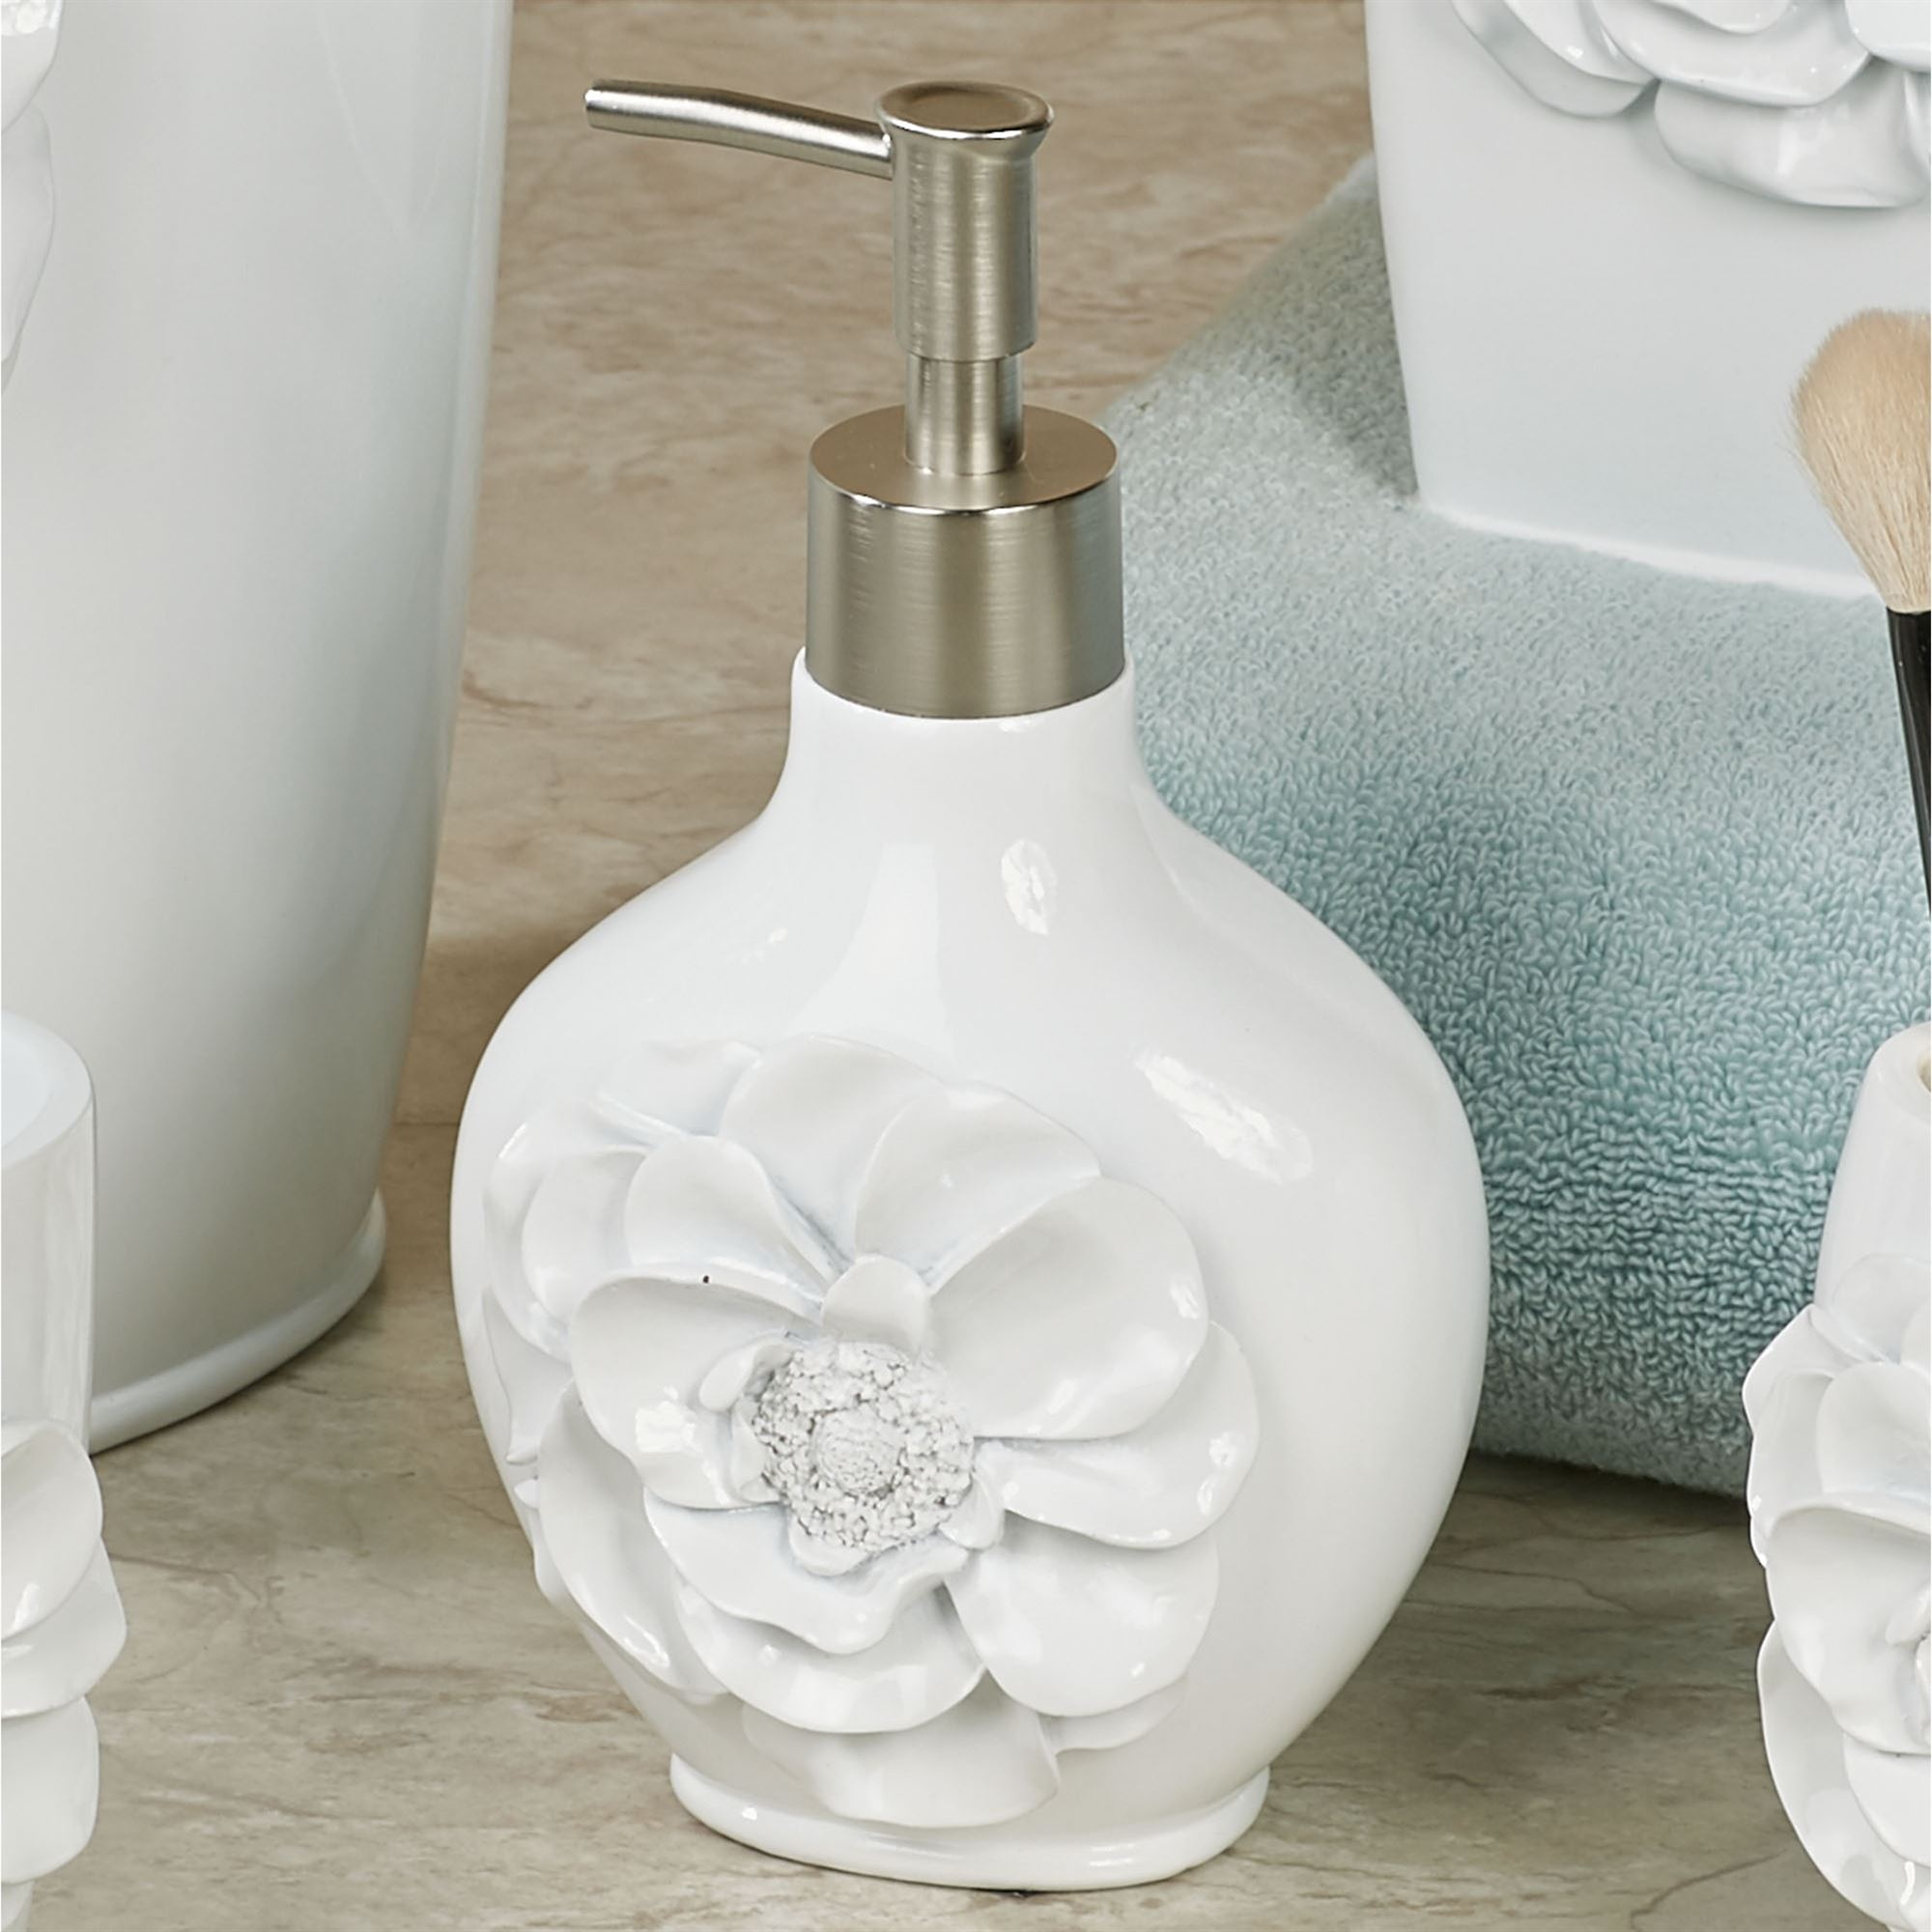 Dkny Mixed Media Accent Lotion Dispenser: Keila Rose Off White Sculpted Floral Bath Accessories